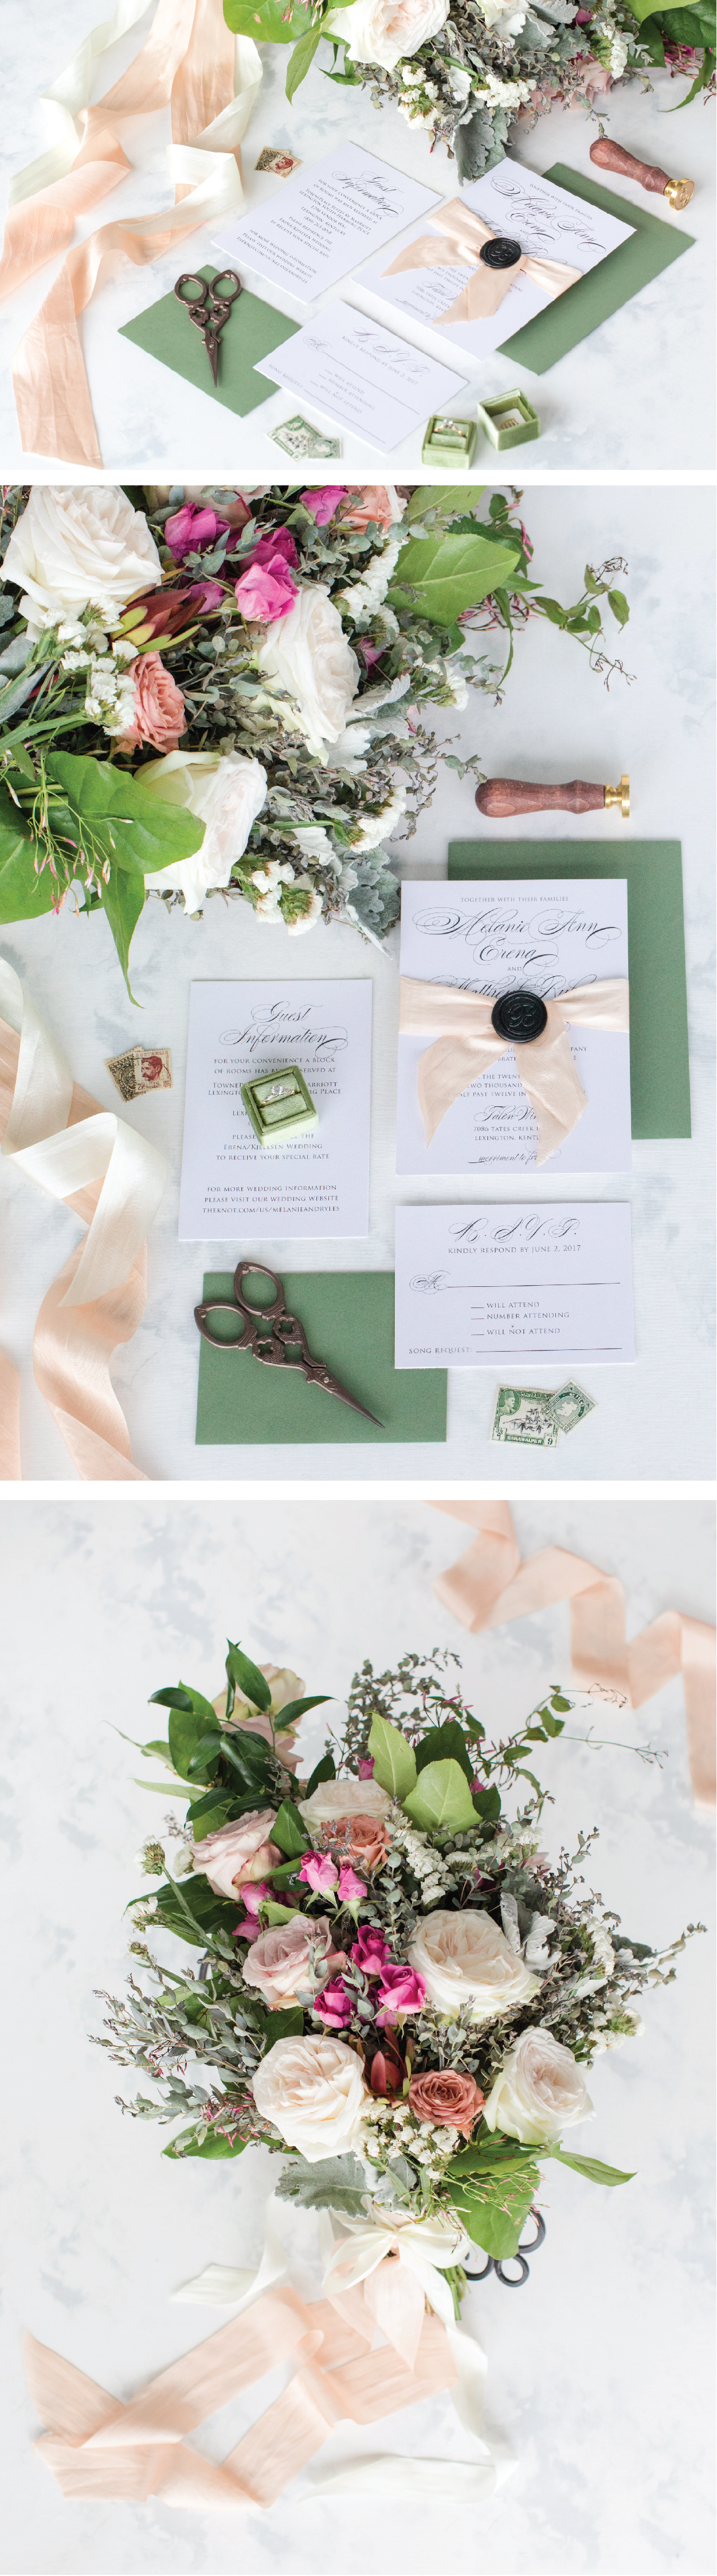 Pinterest Wedding Invites-02